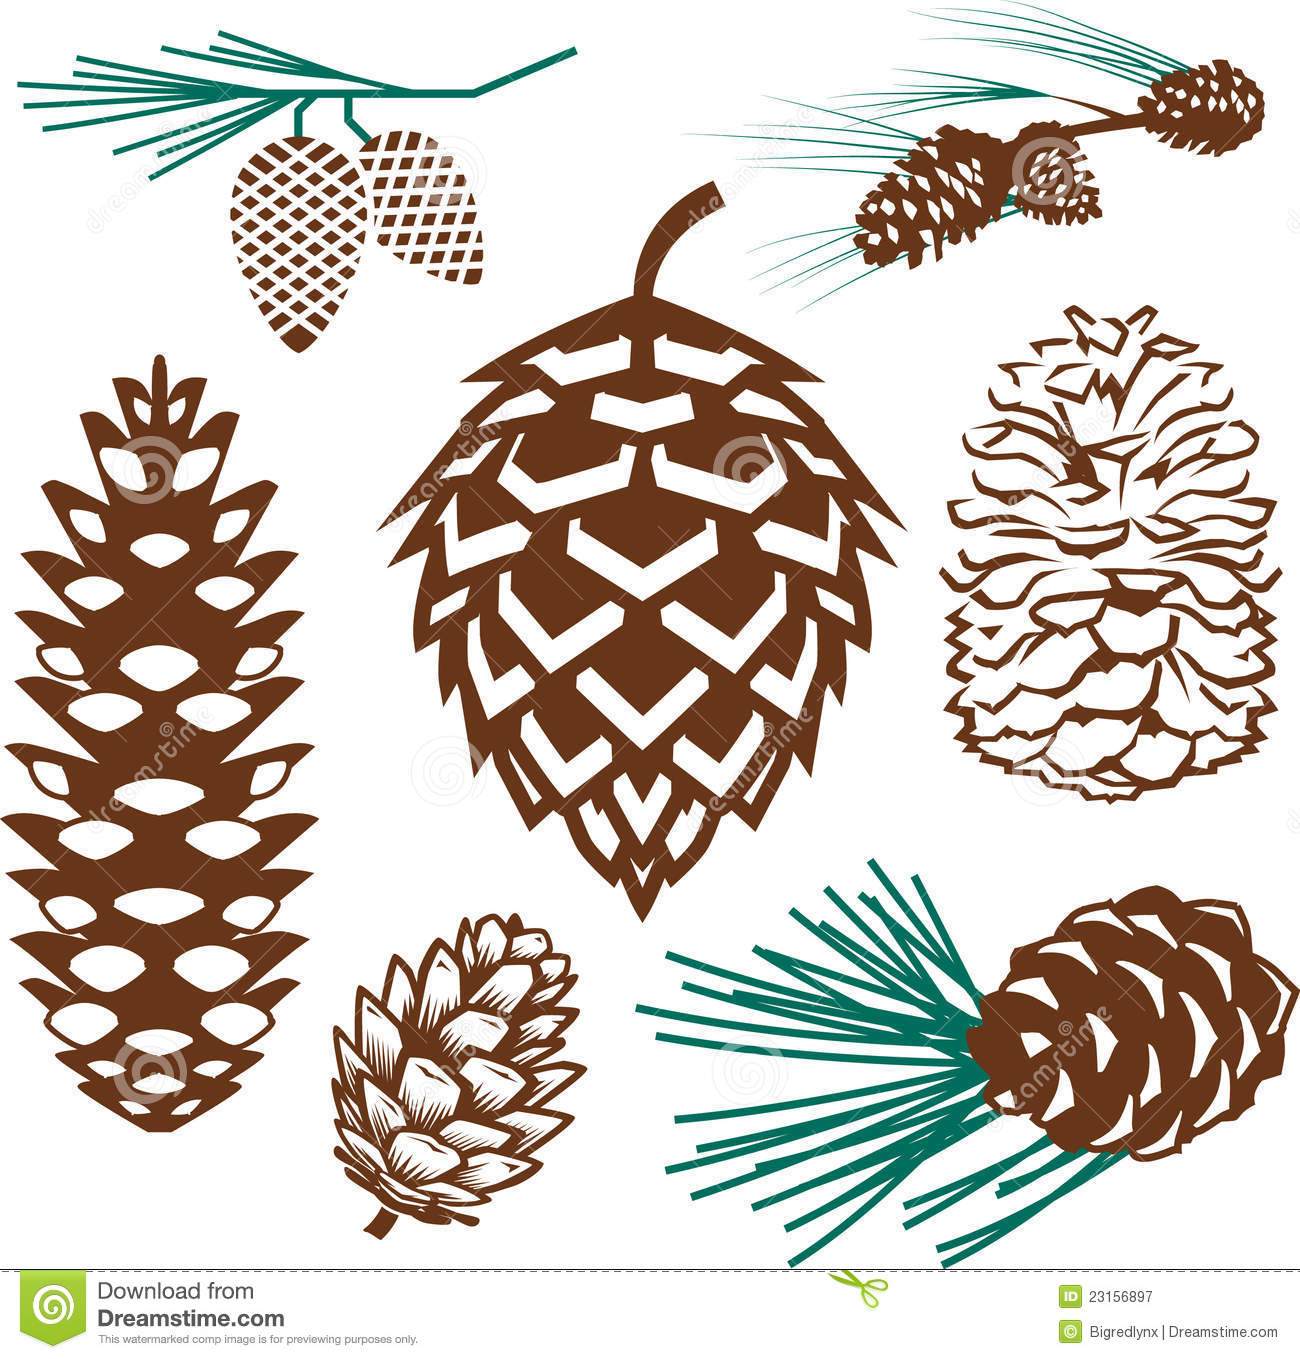 Clip art collection of various styles of pinecone.